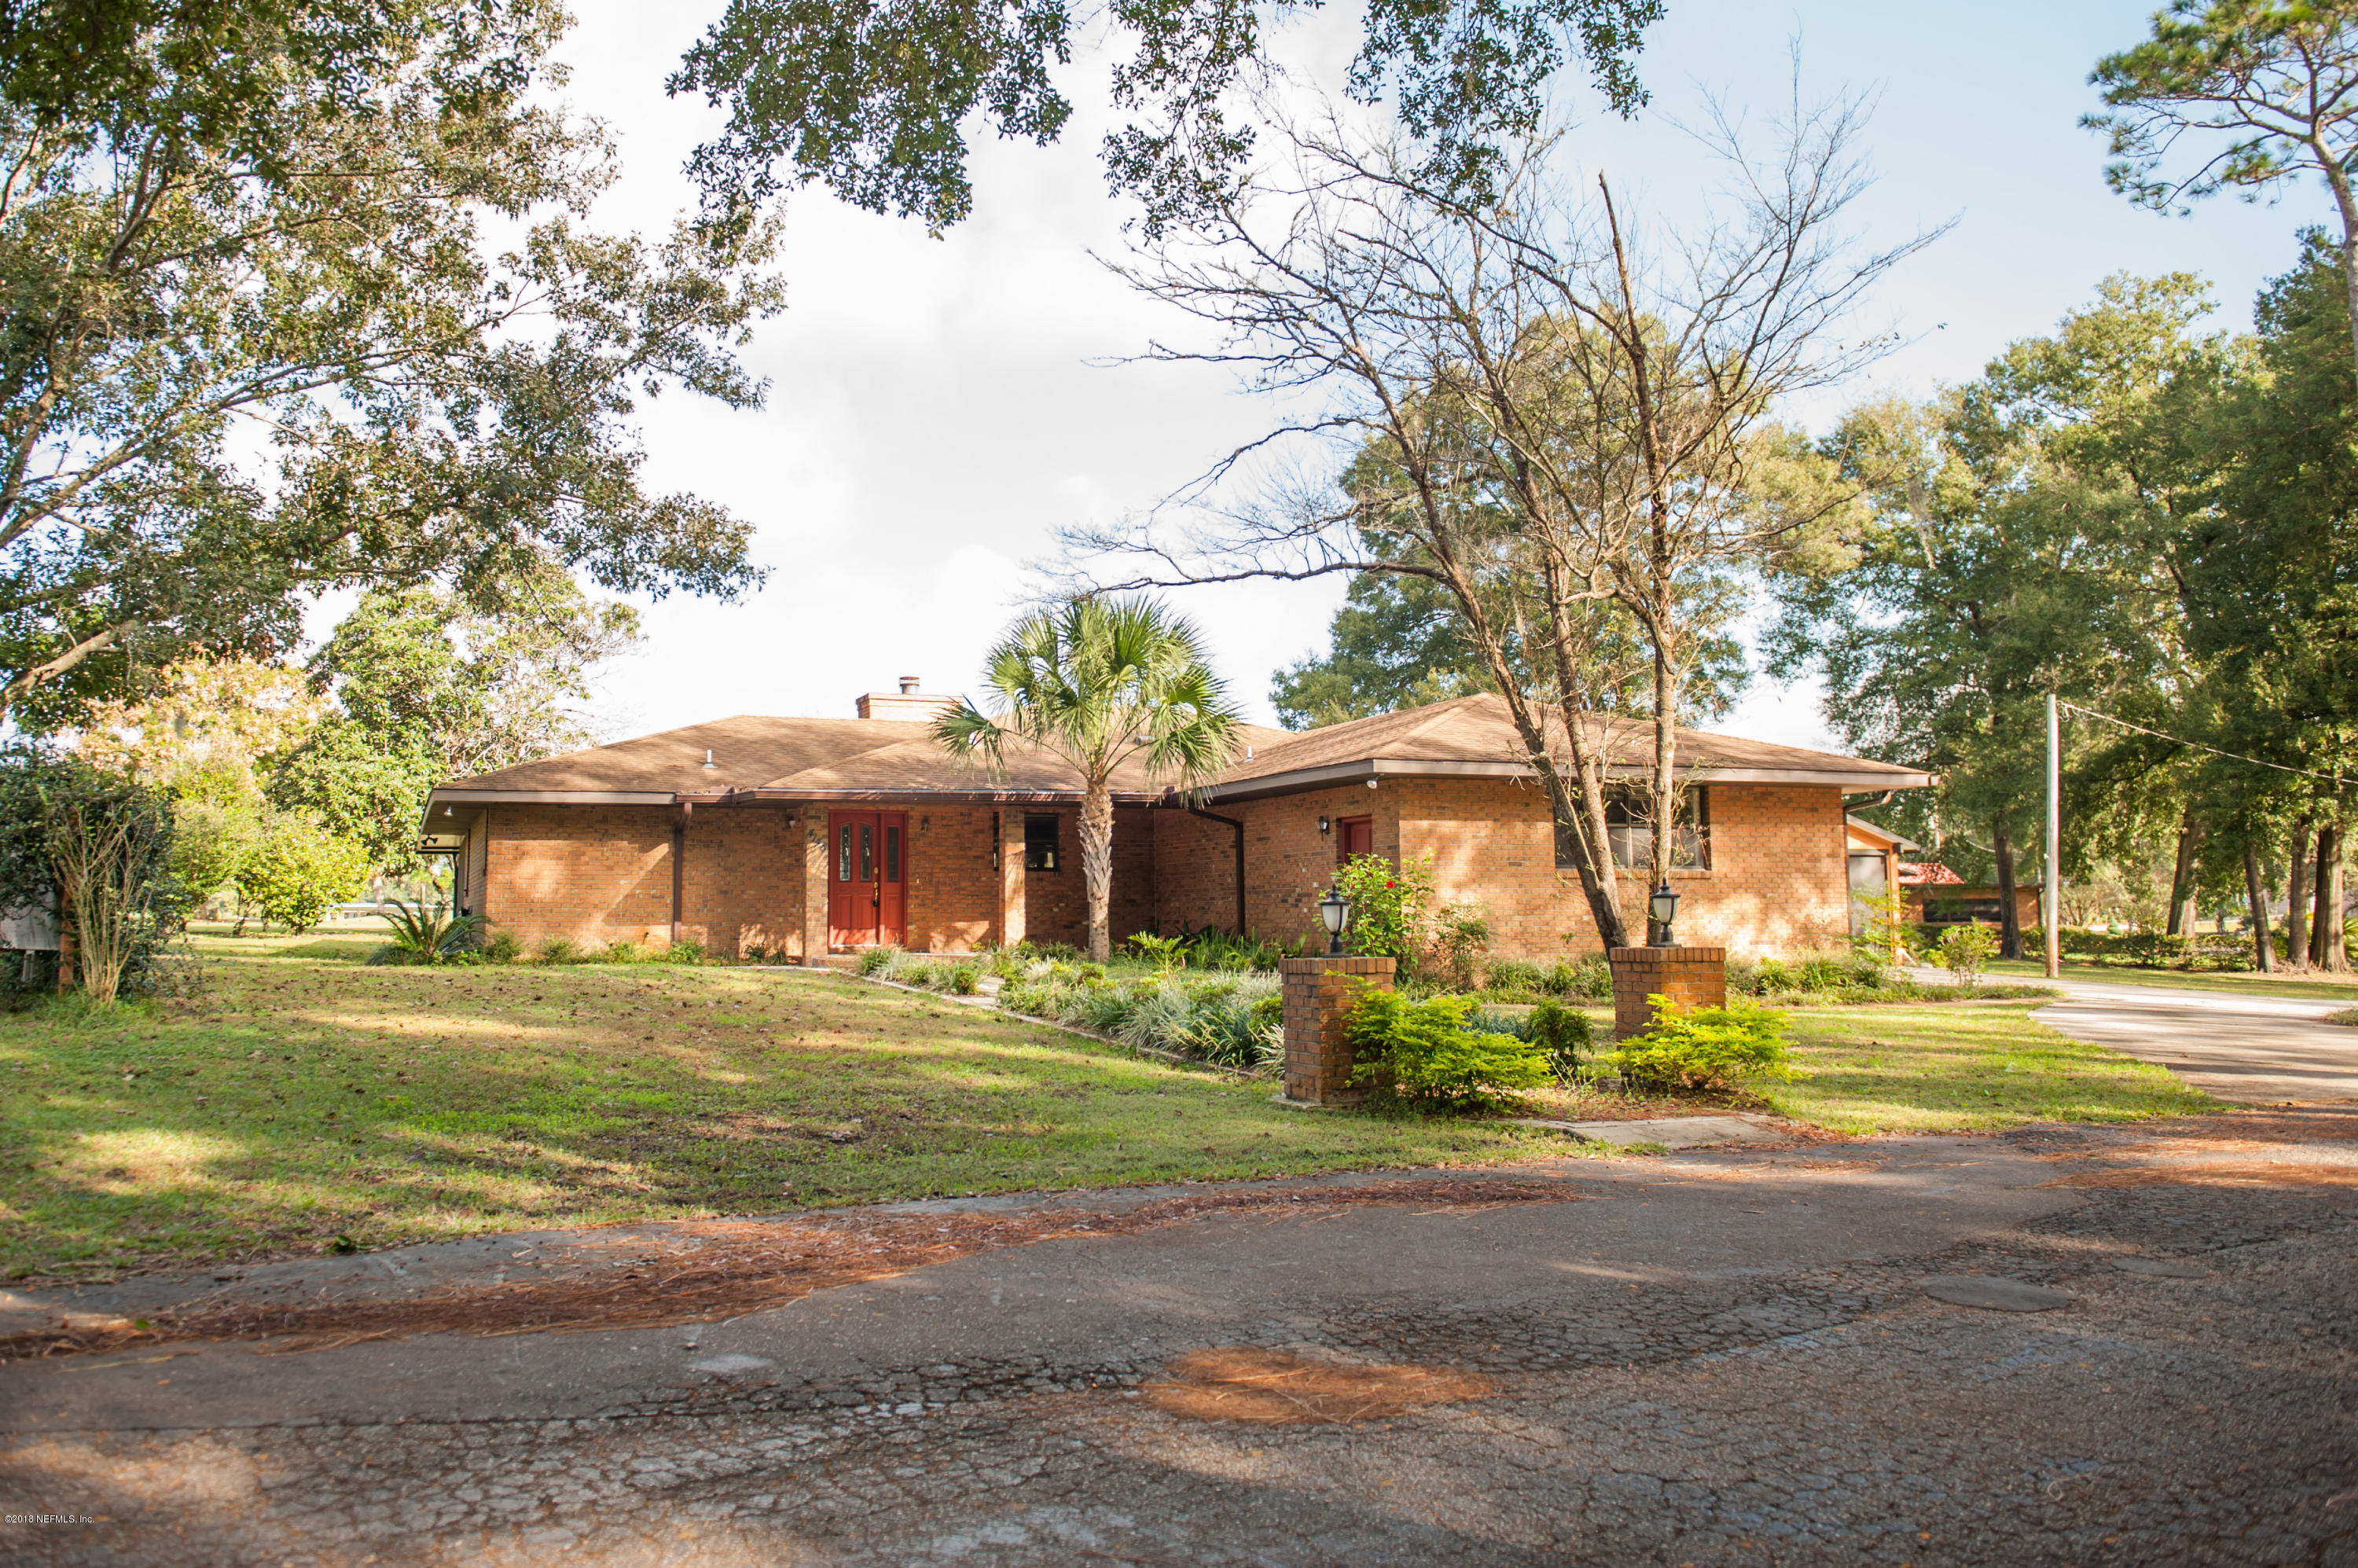 4148 1ST, KEYSTONE HEIGHTS, FLORIDA 32656, 2 Bedrooms Bedrooms, ,2 BathroomsBathrooms,Residential - single family,For sale,1ST,967534